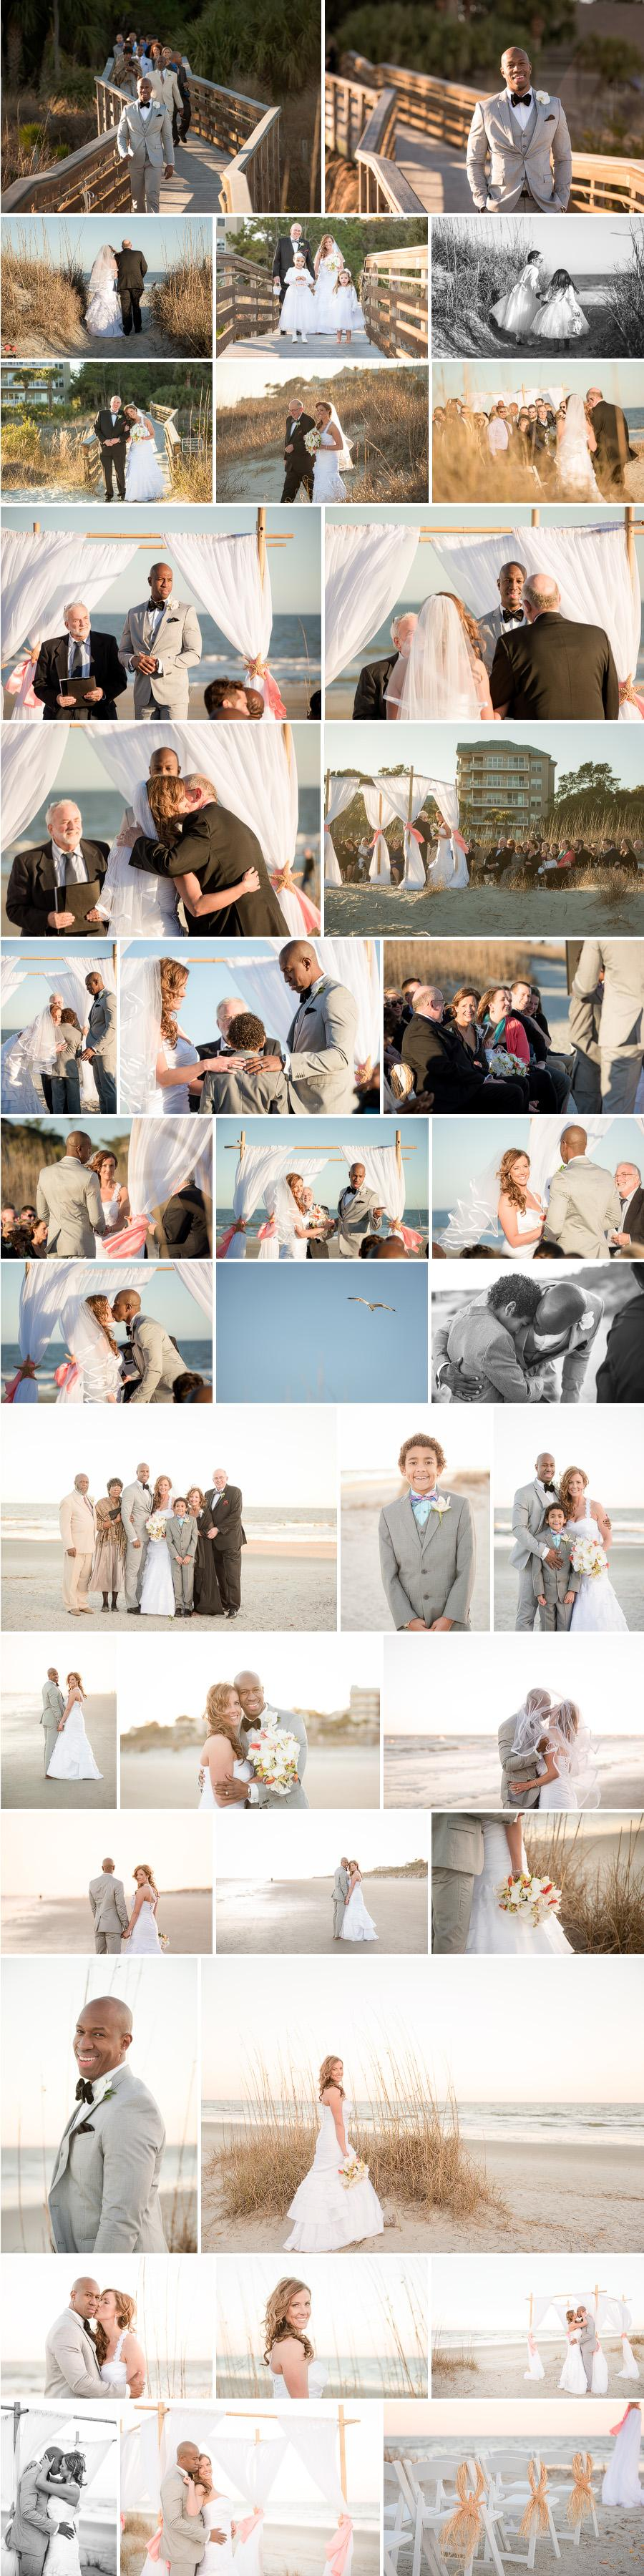 hilton head beachfront destination wedding